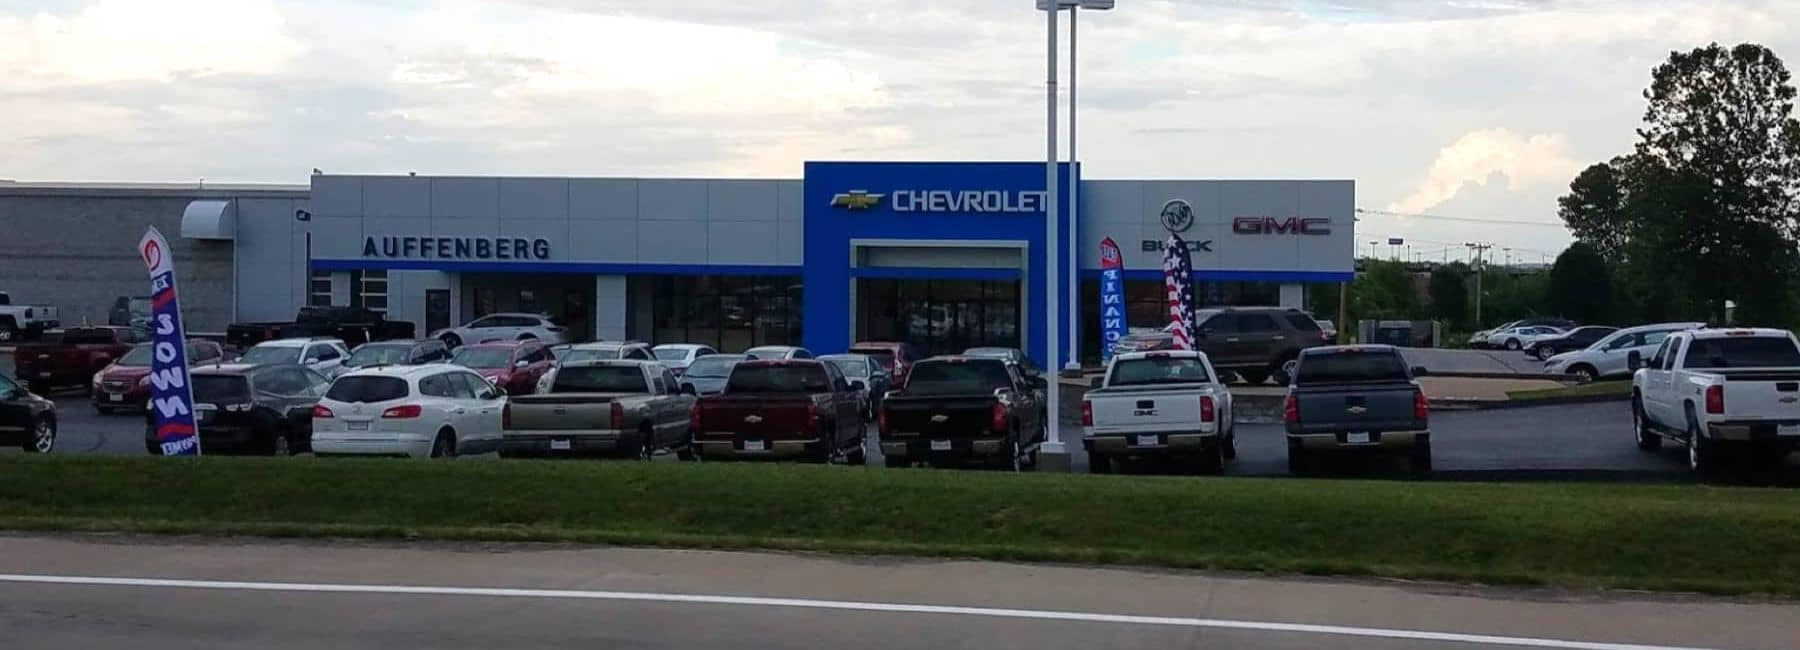 Front view of Affenberg Dealership